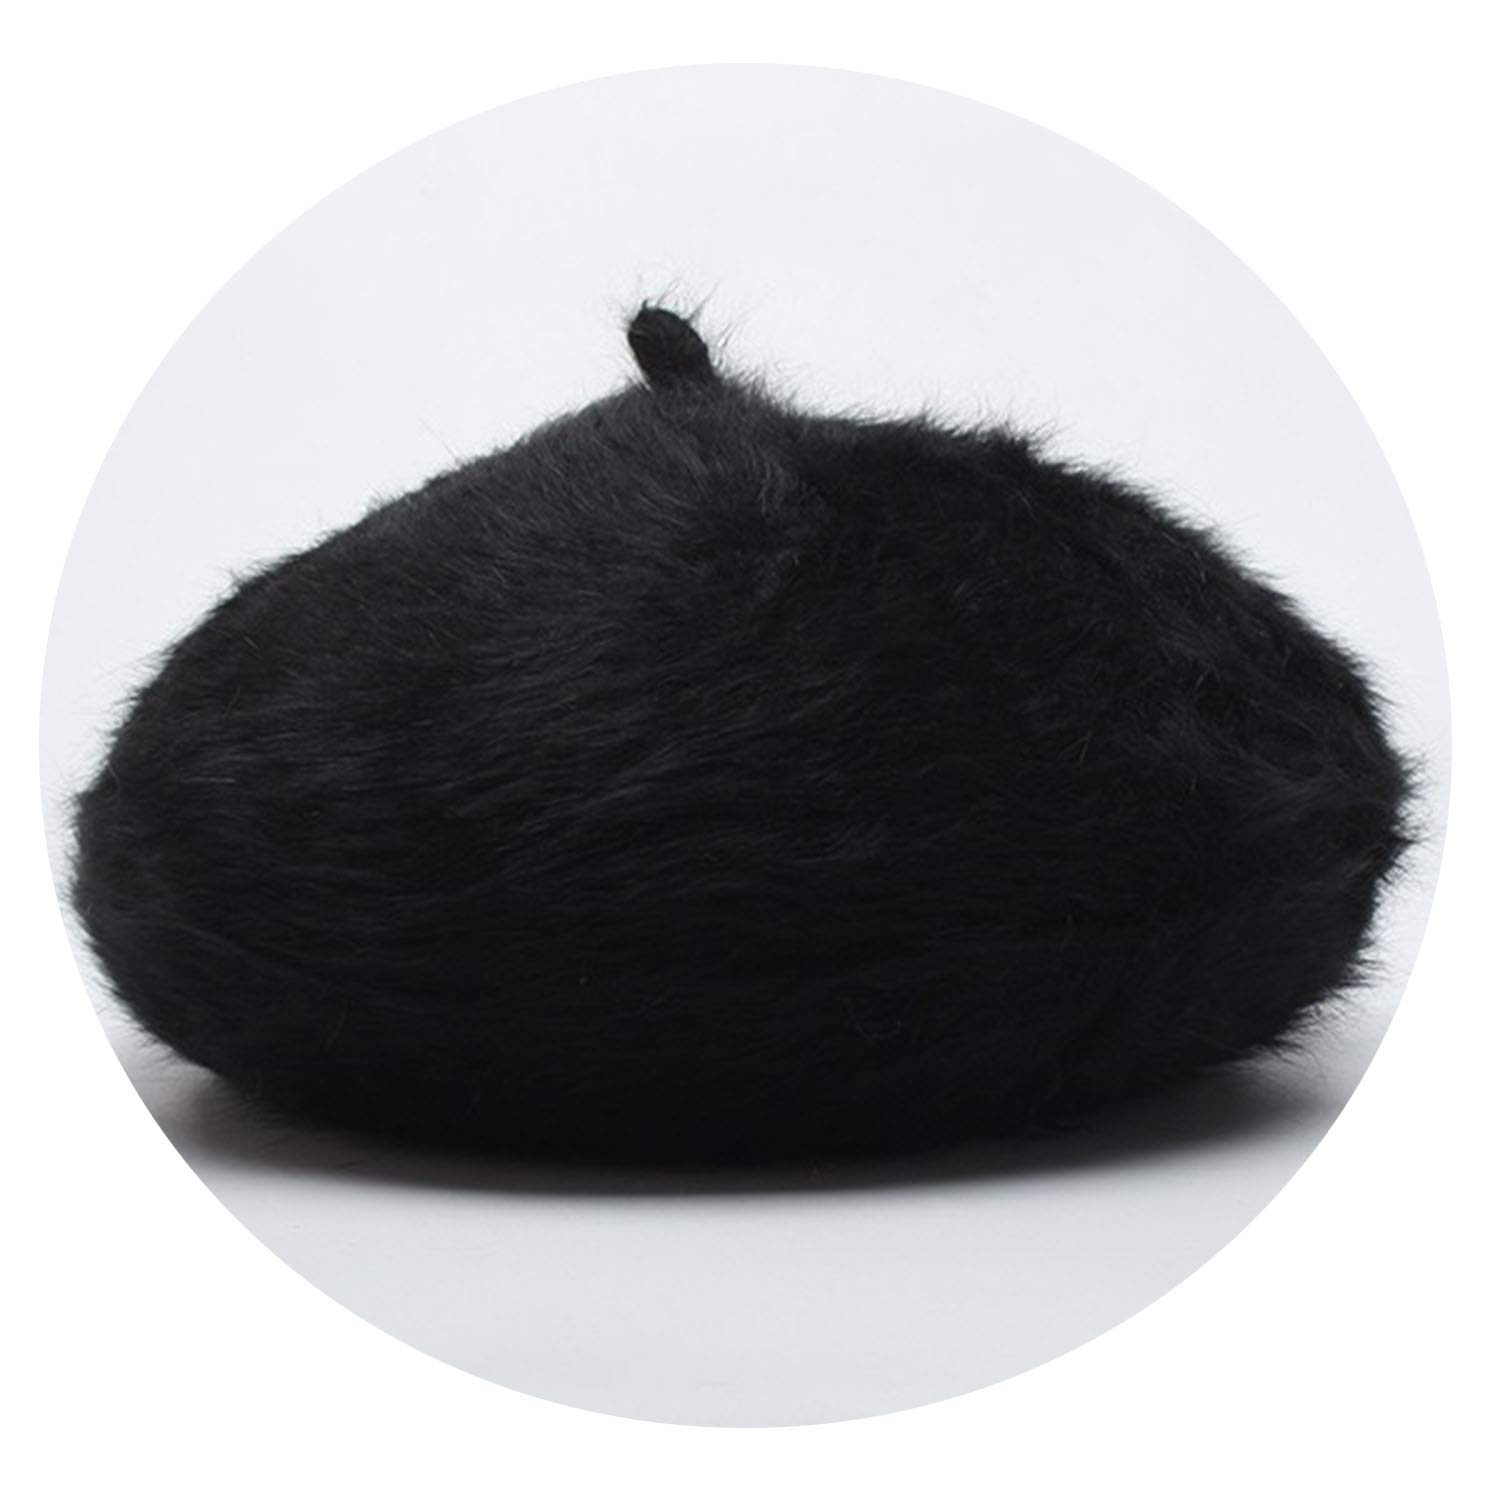 Amazon.com: Women Animal Fur Knitted Berets Hats 2019 Casual Autumn Winter Female hat Gorras Beret Feminino,Black: Clothing